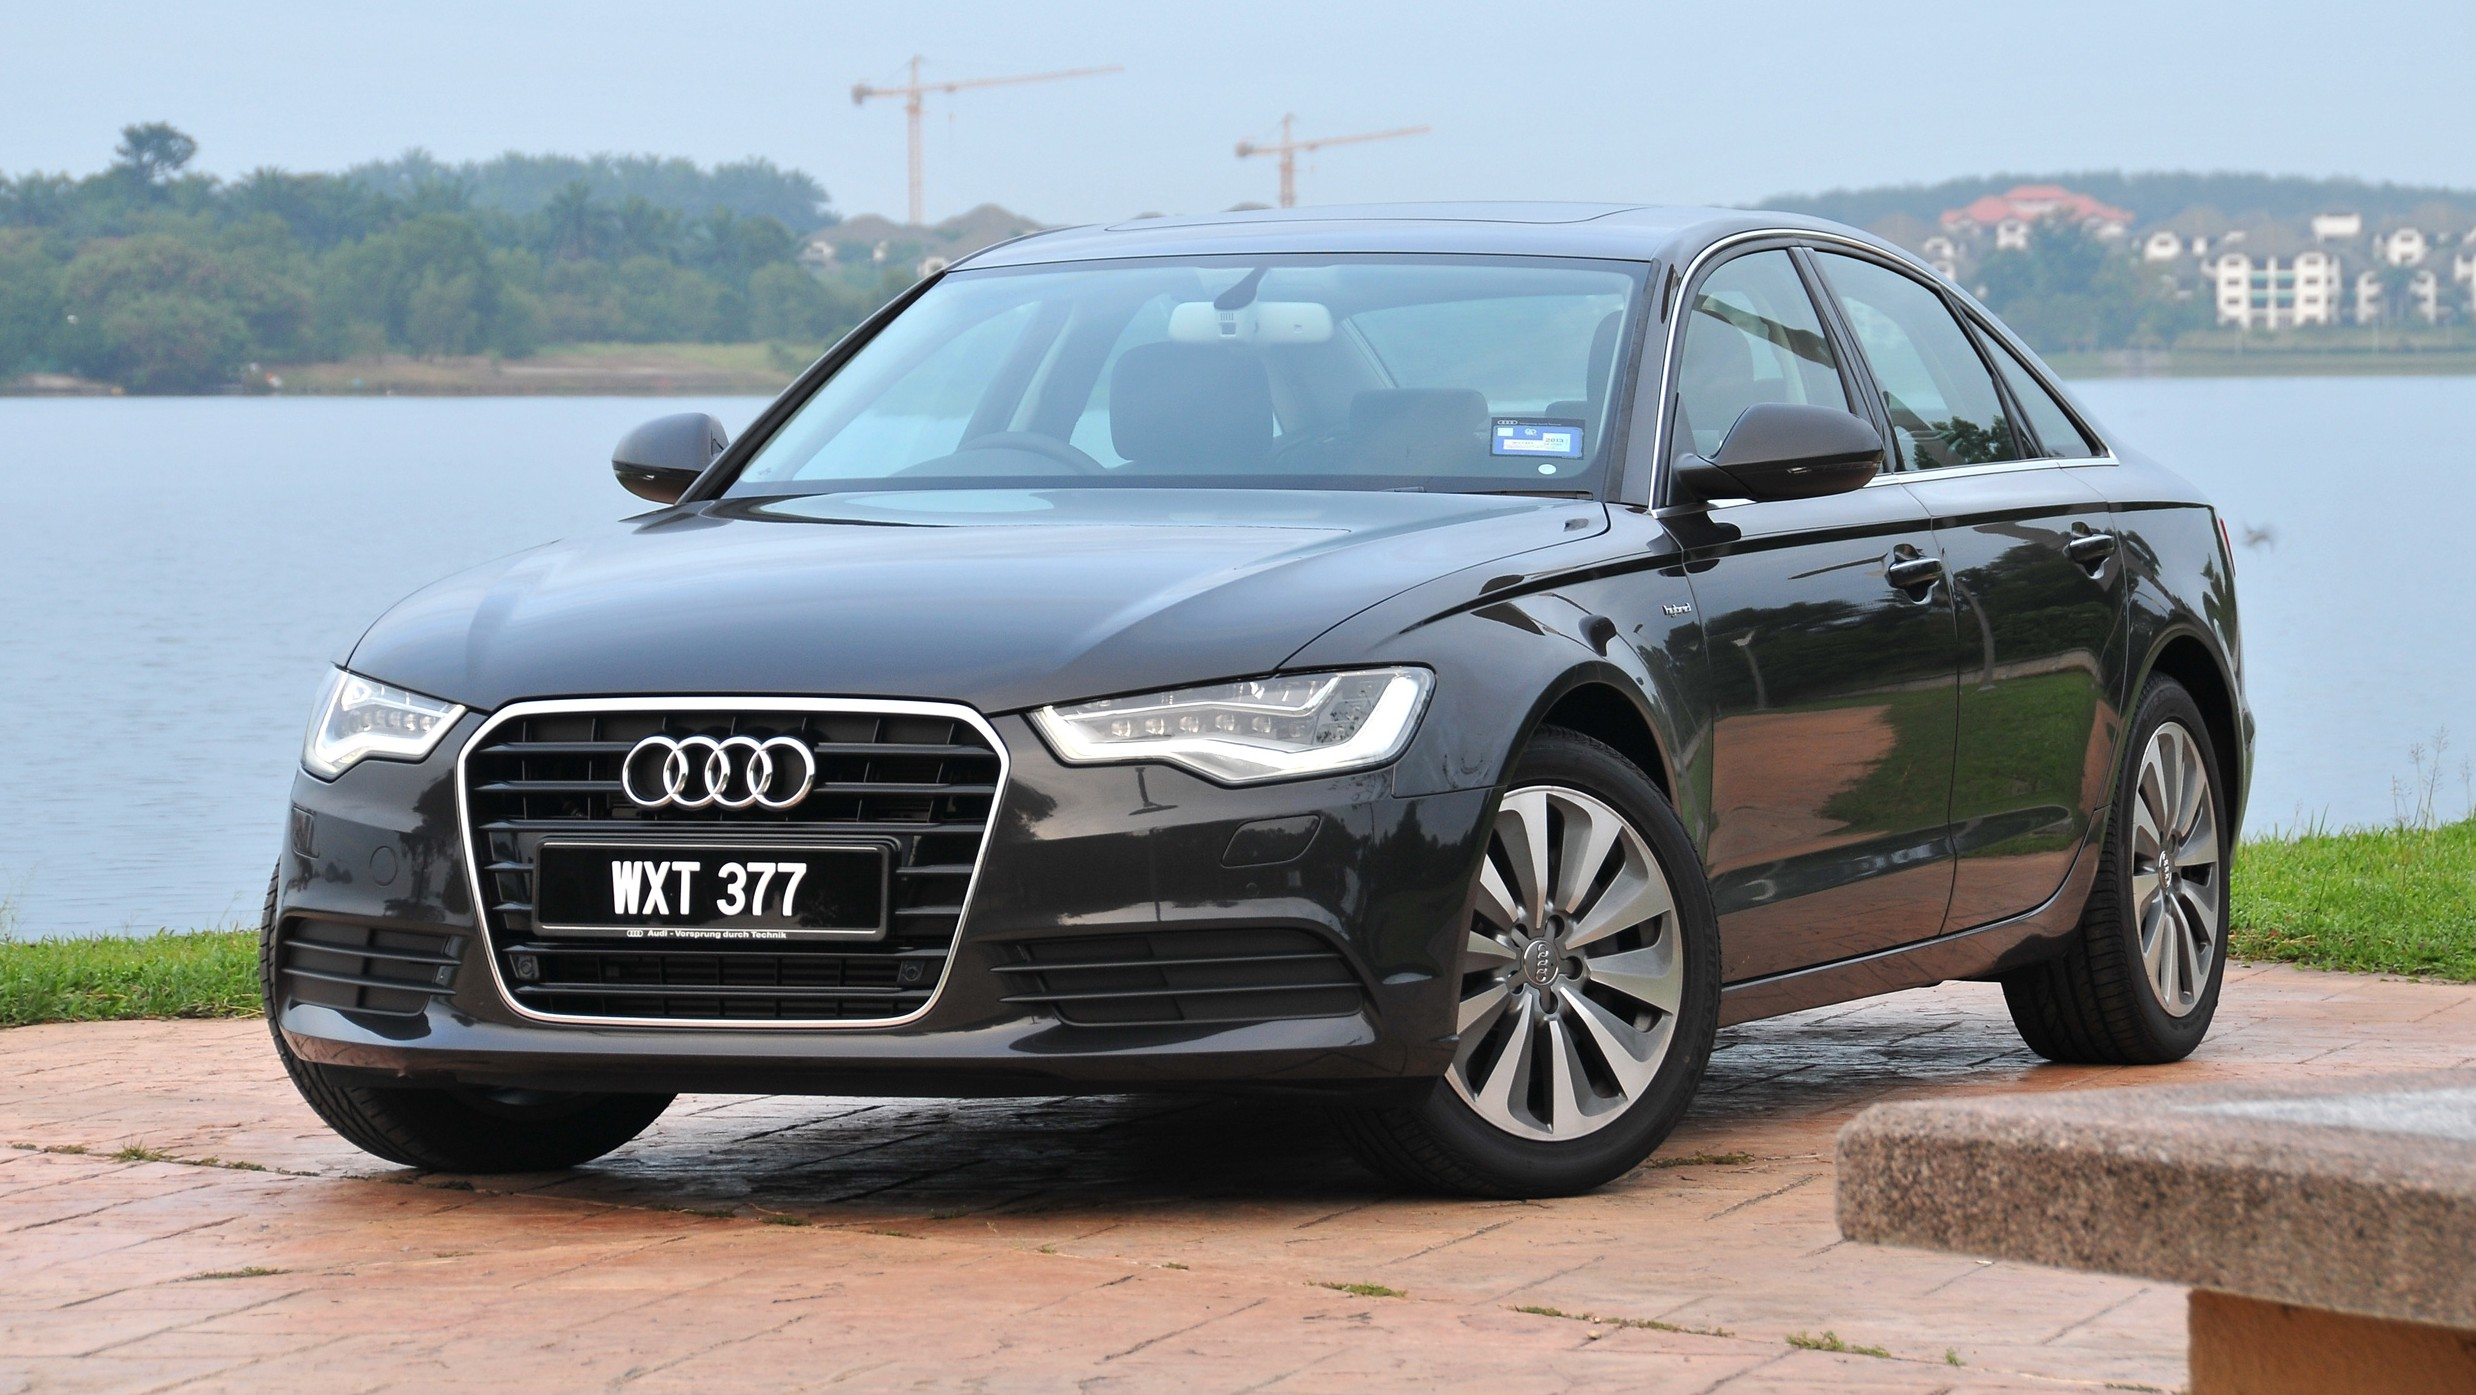 Audi A6 Hybrid Now With Bose Sound System Option Paul Tan